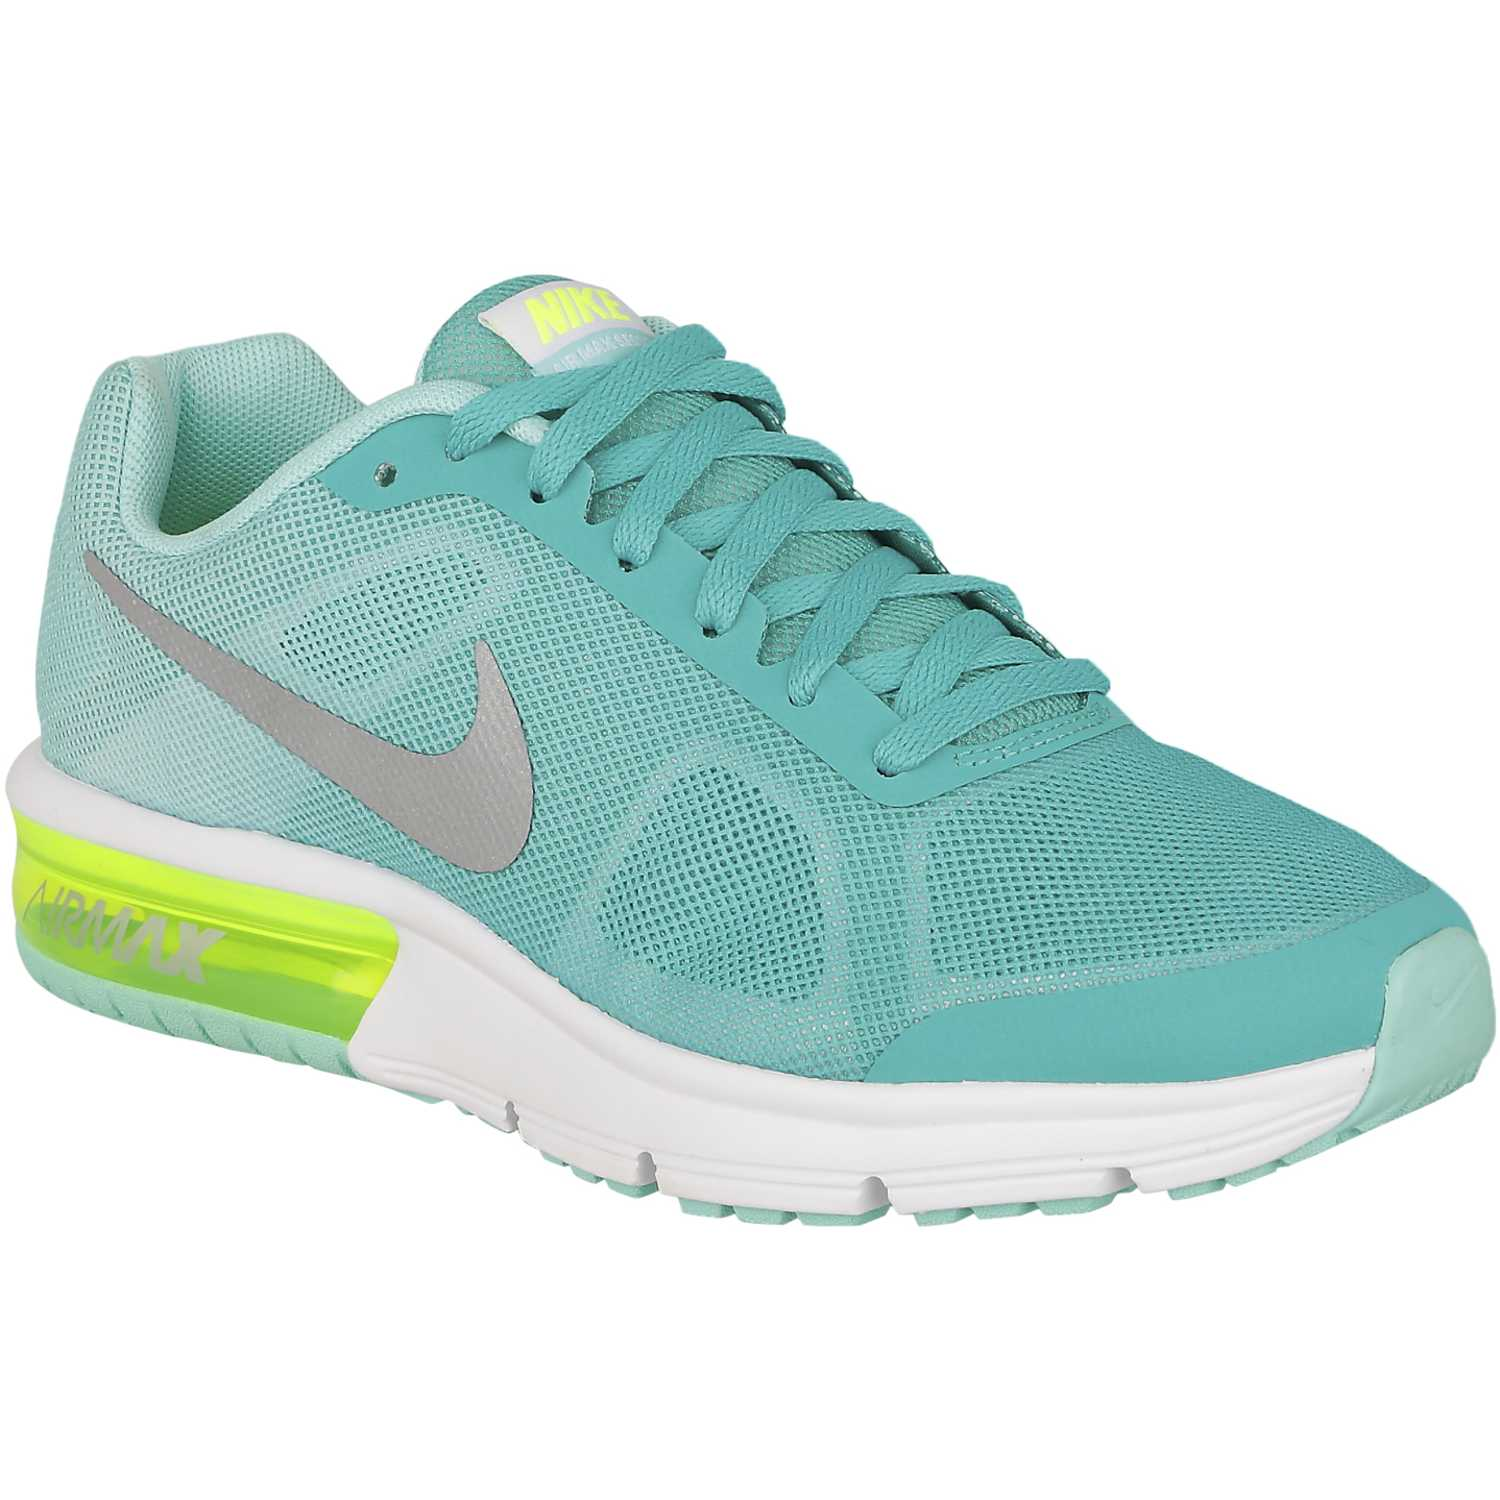 Nike MD Runner GG - Zapatillas para Niña, Color Blanco/Gris/Fucsia, Talla 38